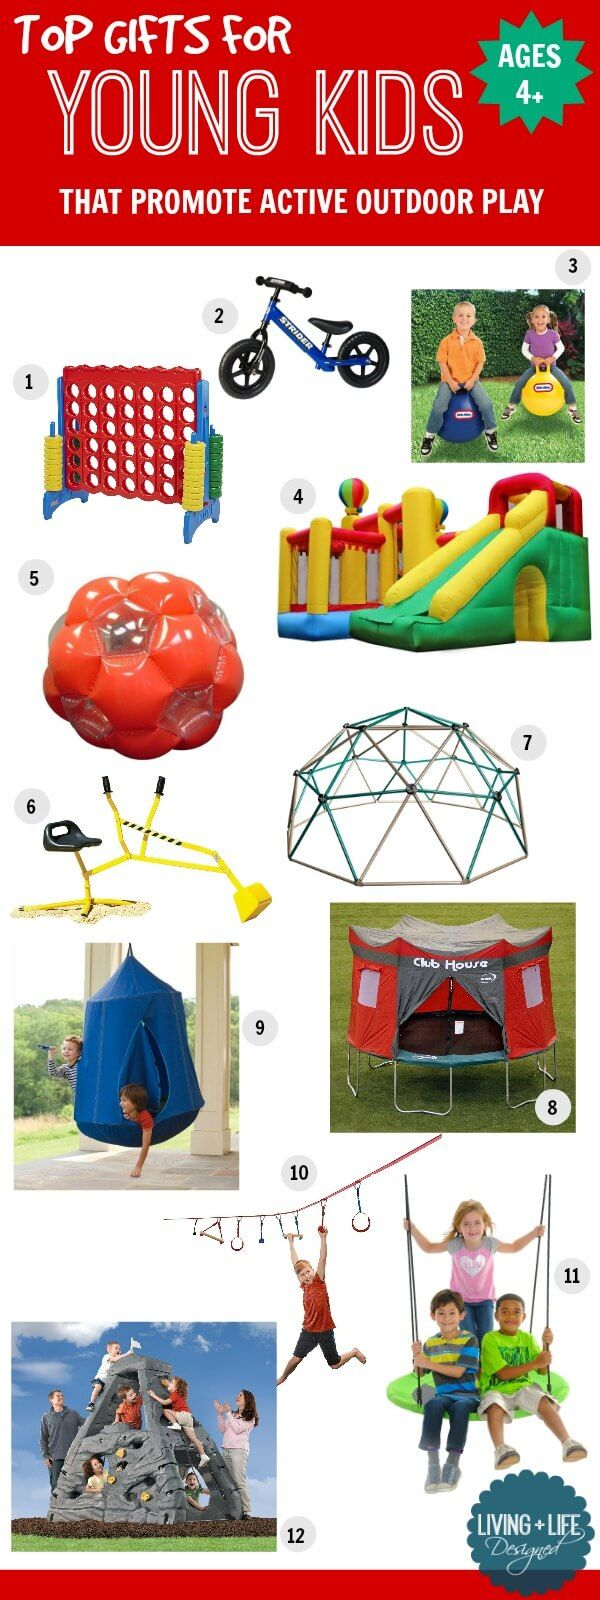 Gift Ideas for Young Kids Ages 4+ That Promote Active Outdoor Play